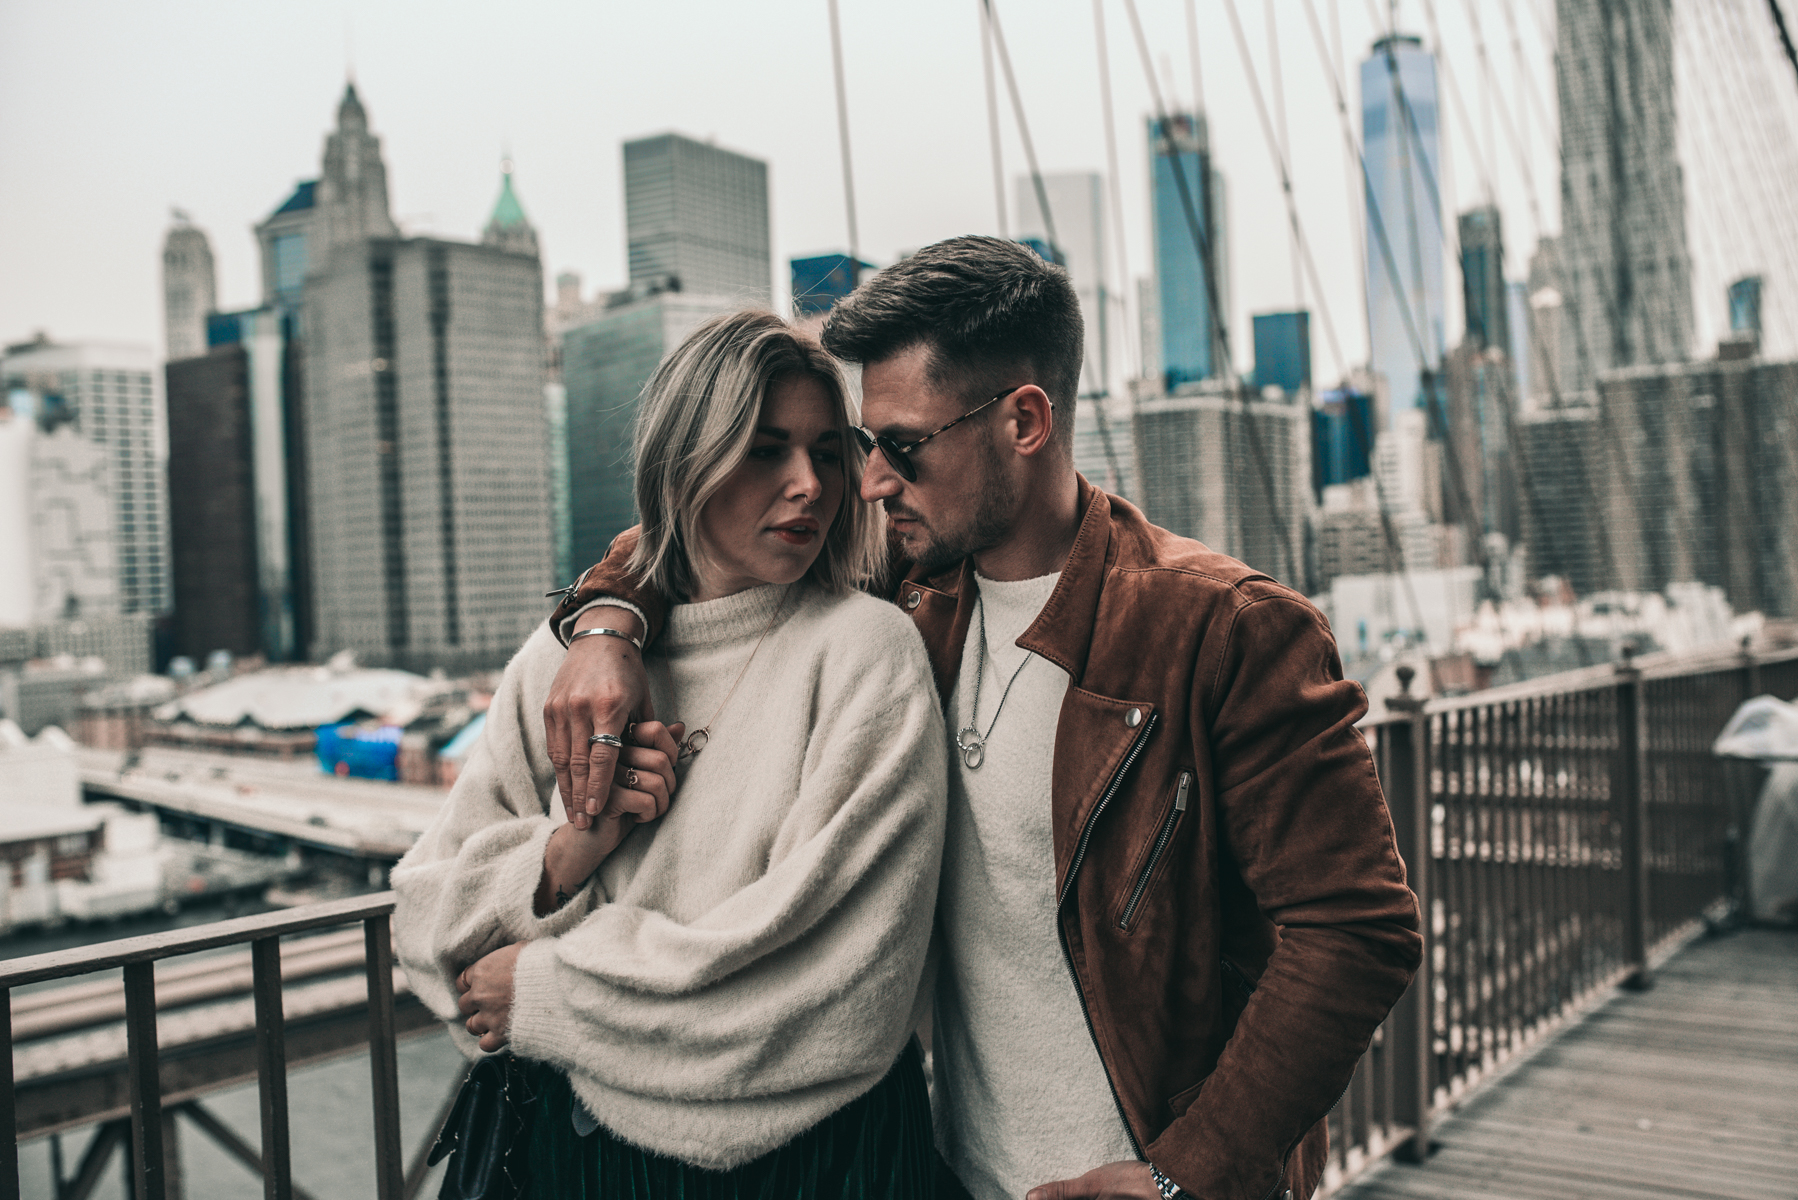 Tommeezjerry-Lifestyleblog-Fashionblog-Maennermodeblog-Maennerblog-Modeblog-New-York-Couple-Christmas-Weihnachten-Thomas-Sabo-Together-Paerchenbilder